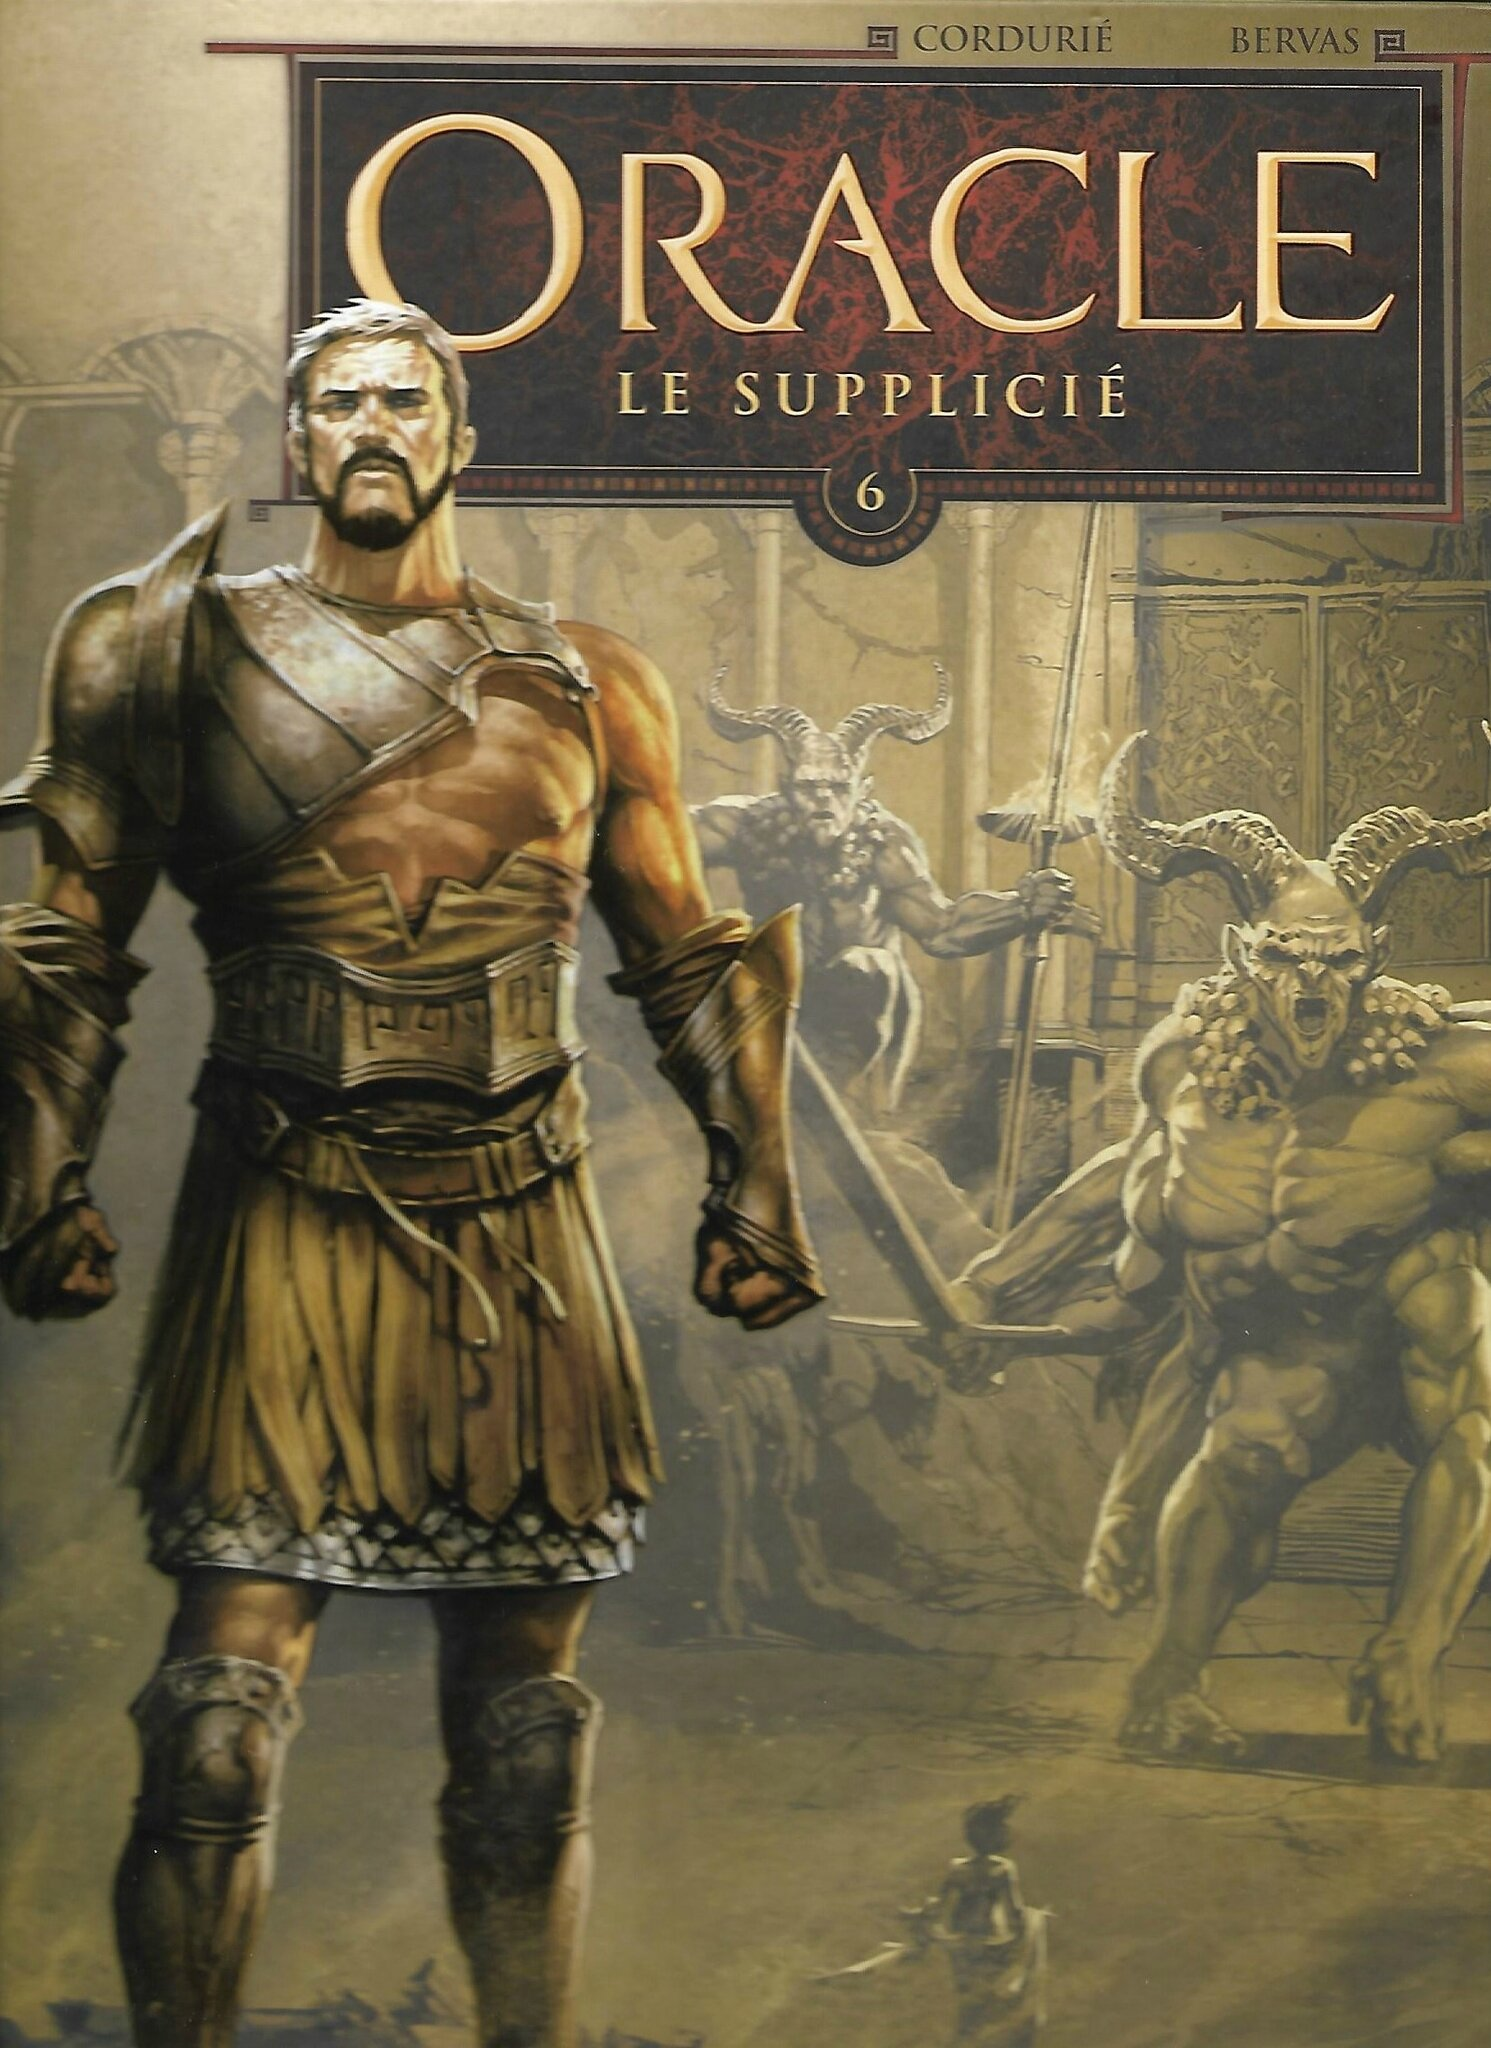 ORACLE - Volume 6: Le supplicié - par Sylvain Cordurié, Stéphane Bervas et Guillaume Lopez (couleurs)